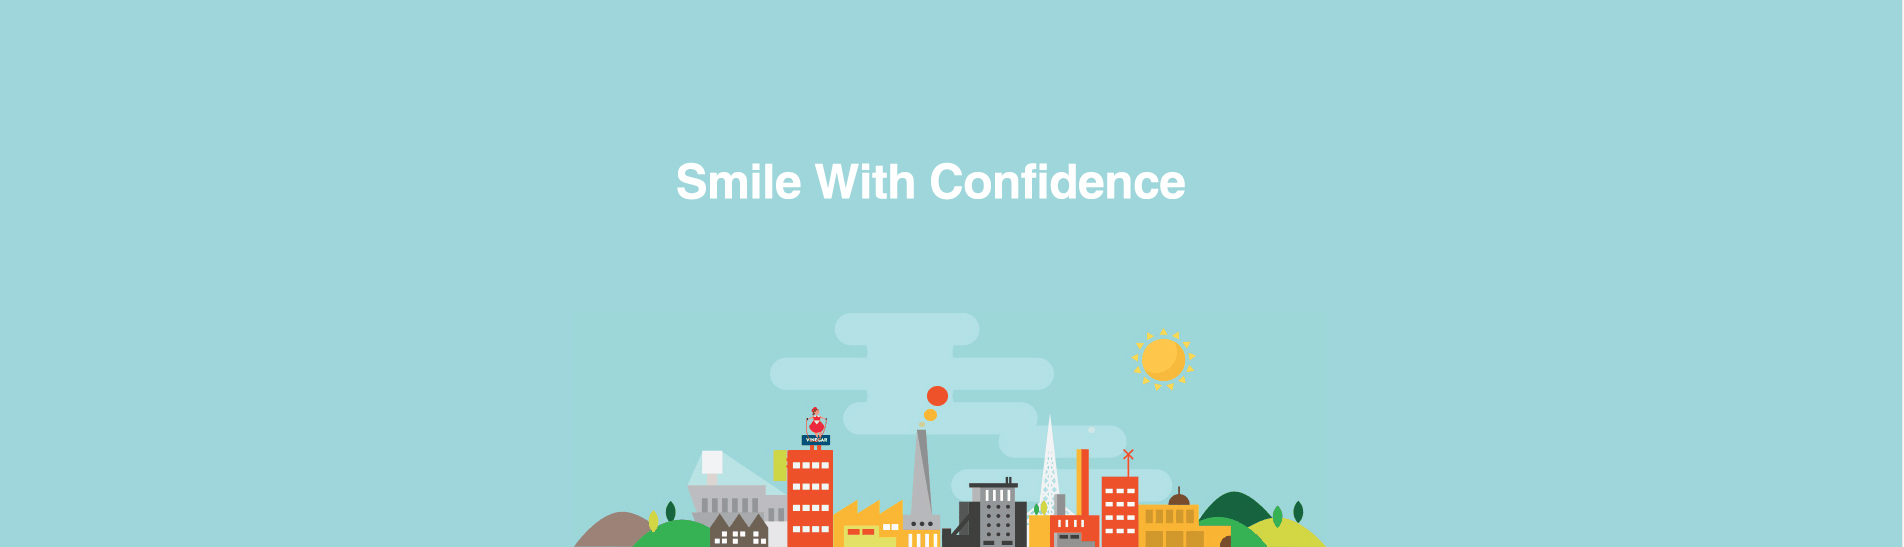 smile-with-confidence